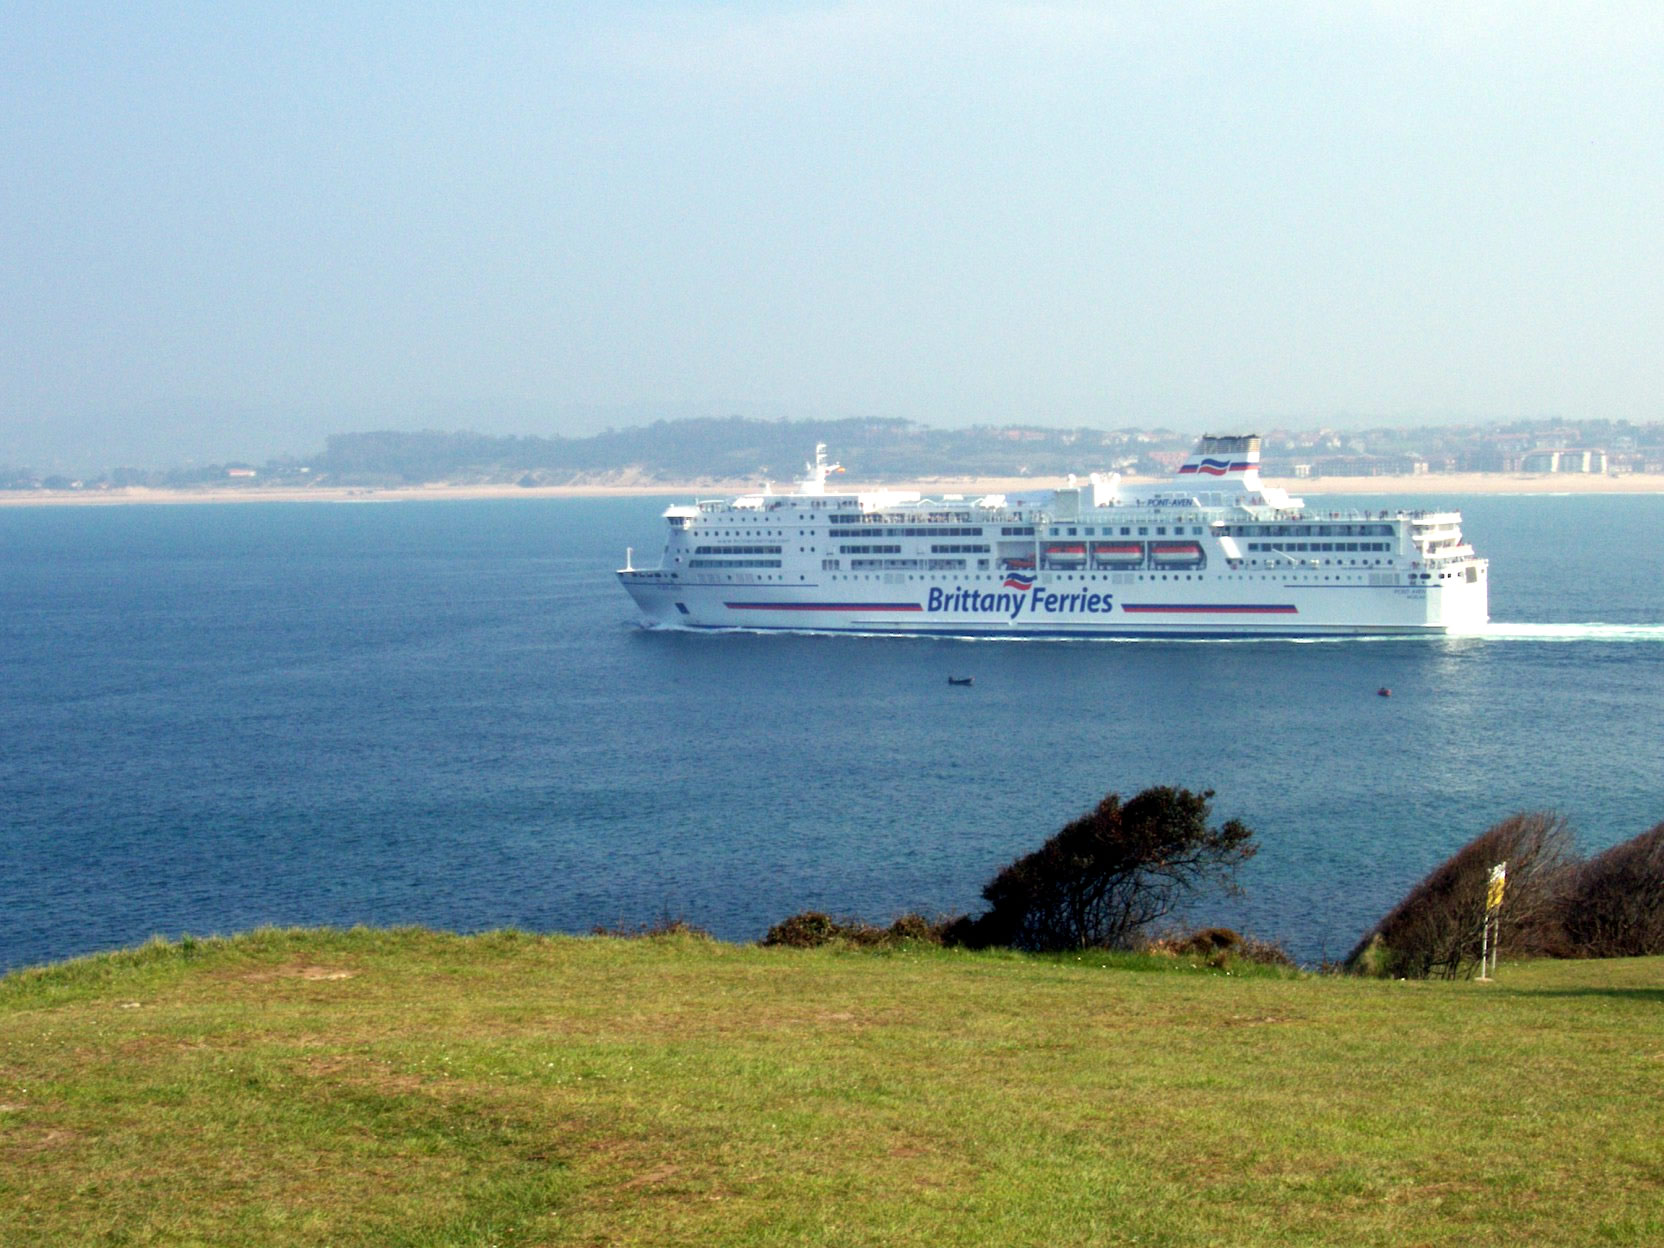 Brittany Ferries Re-Commences Sailings from Cork to Roscoff